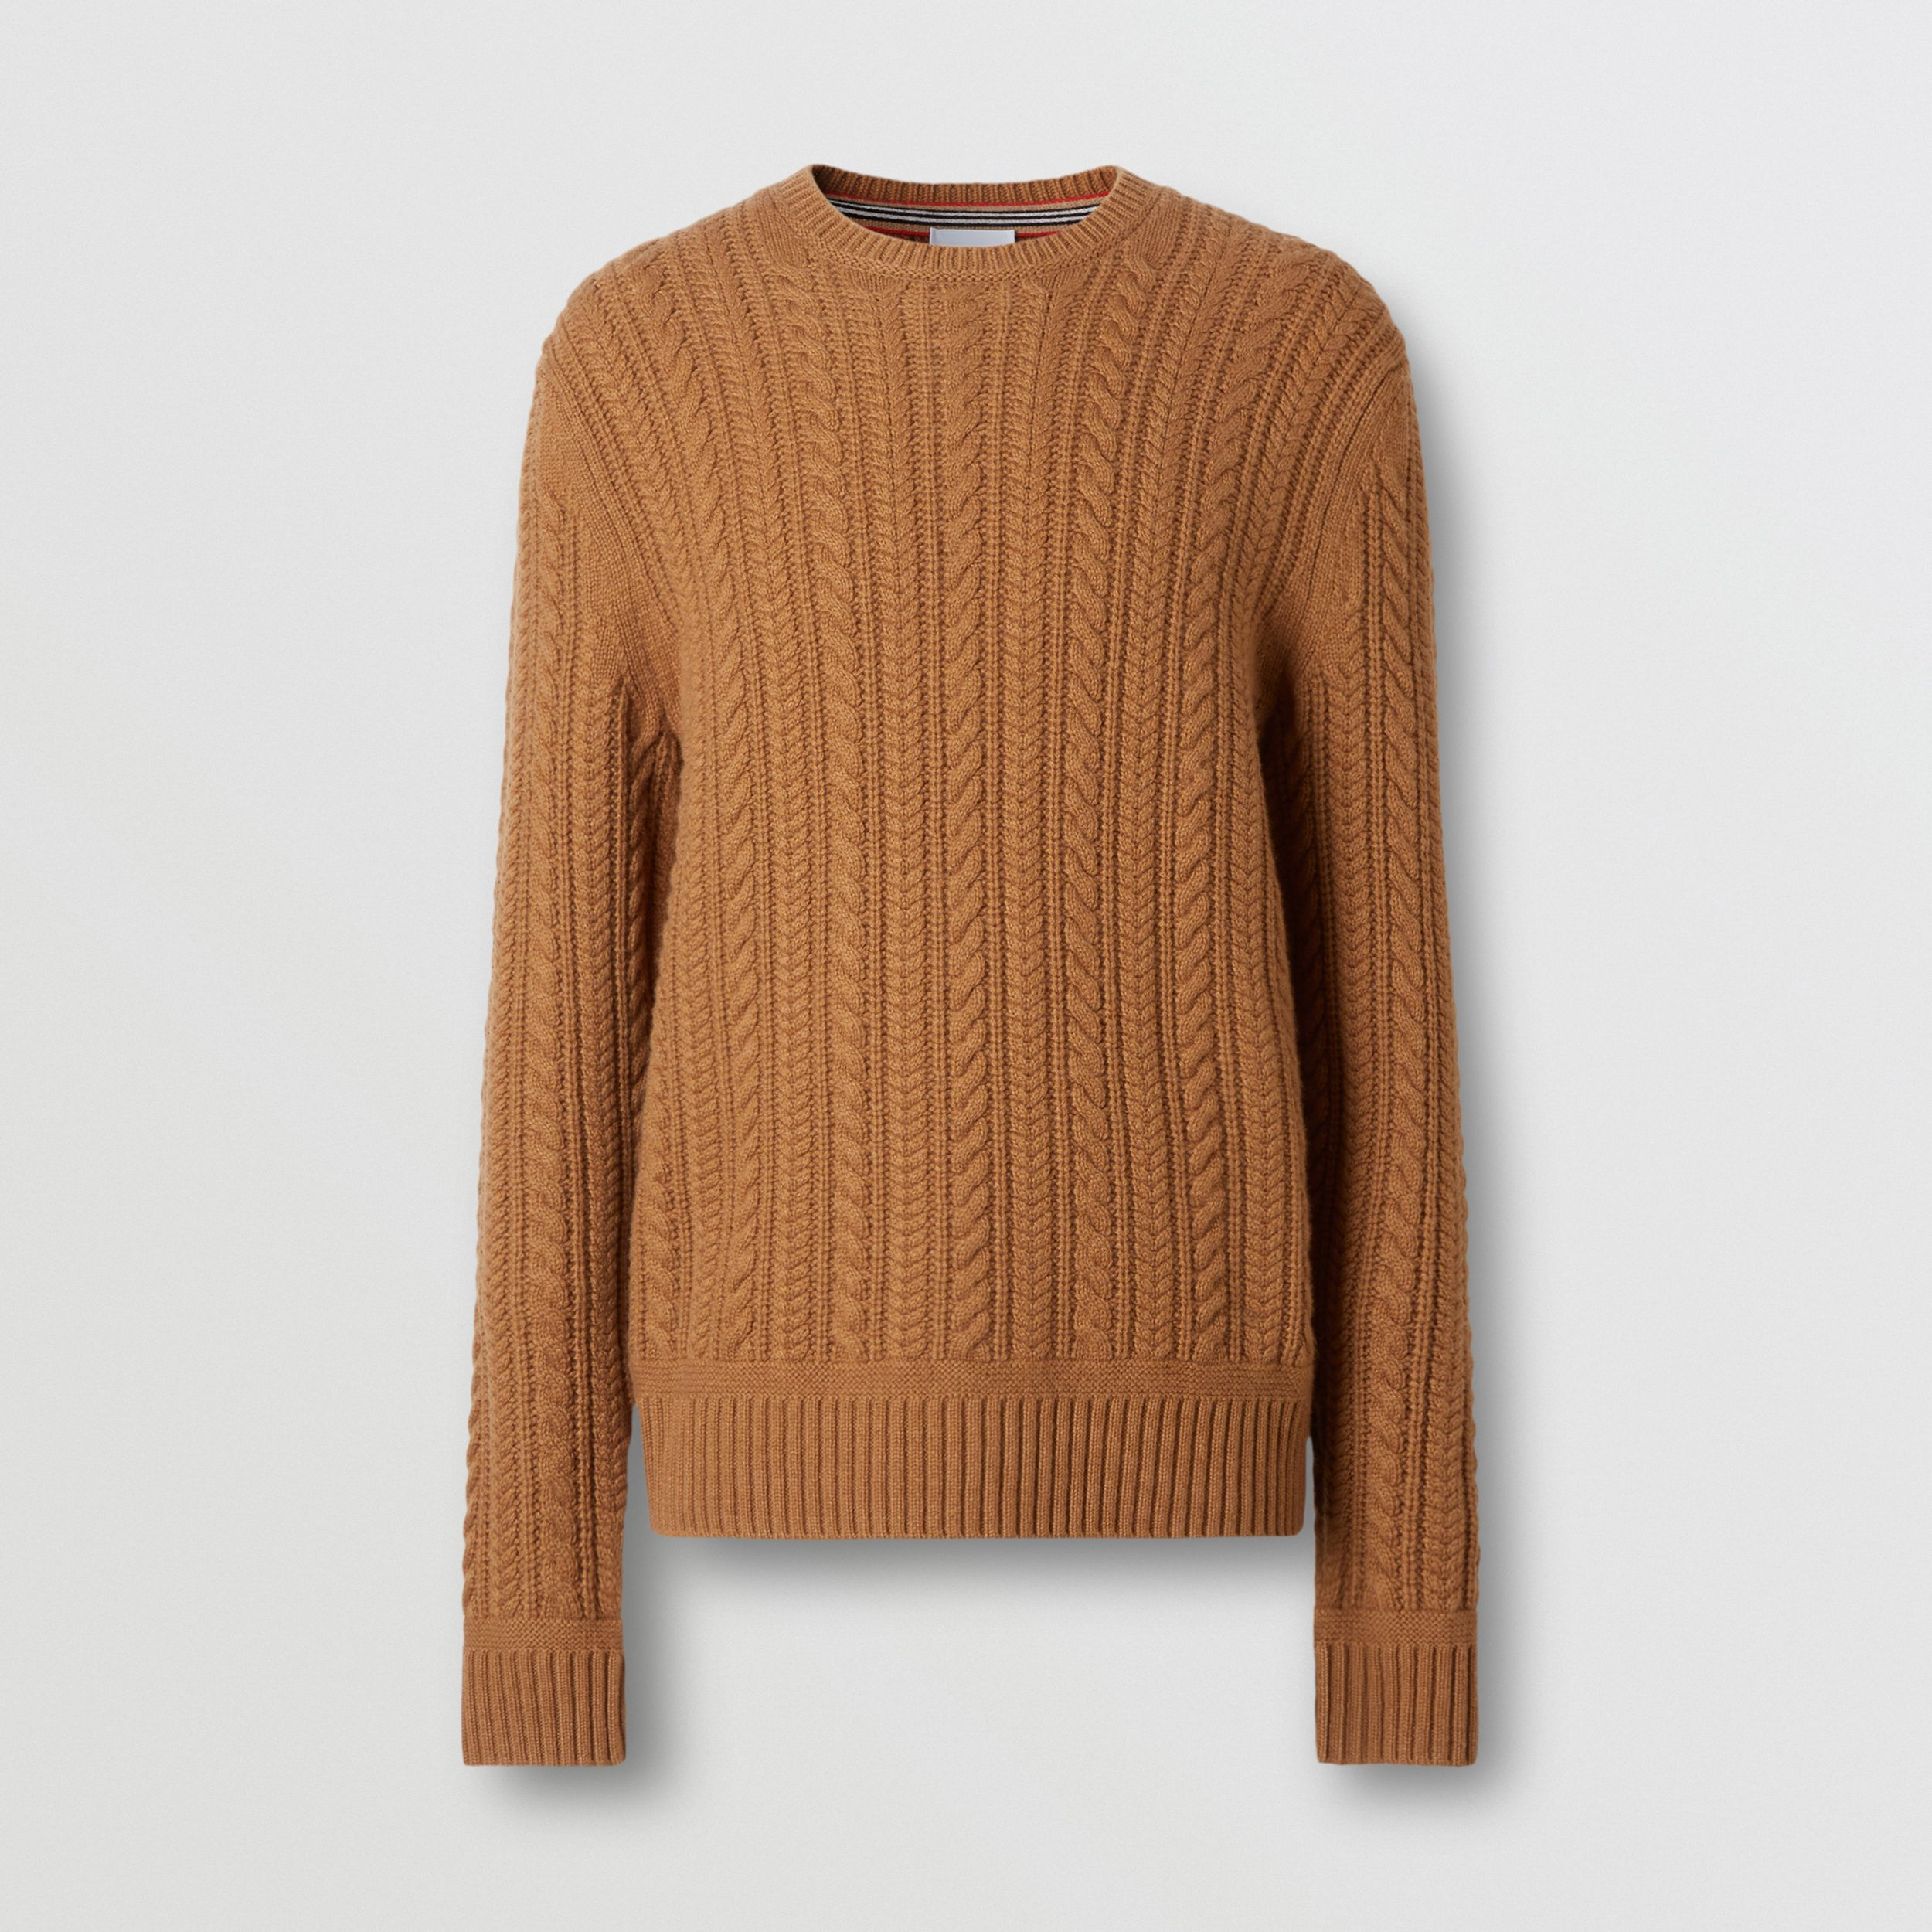 Cable Knit Cashmere Sweater in Maple - Men | Burberry - 4